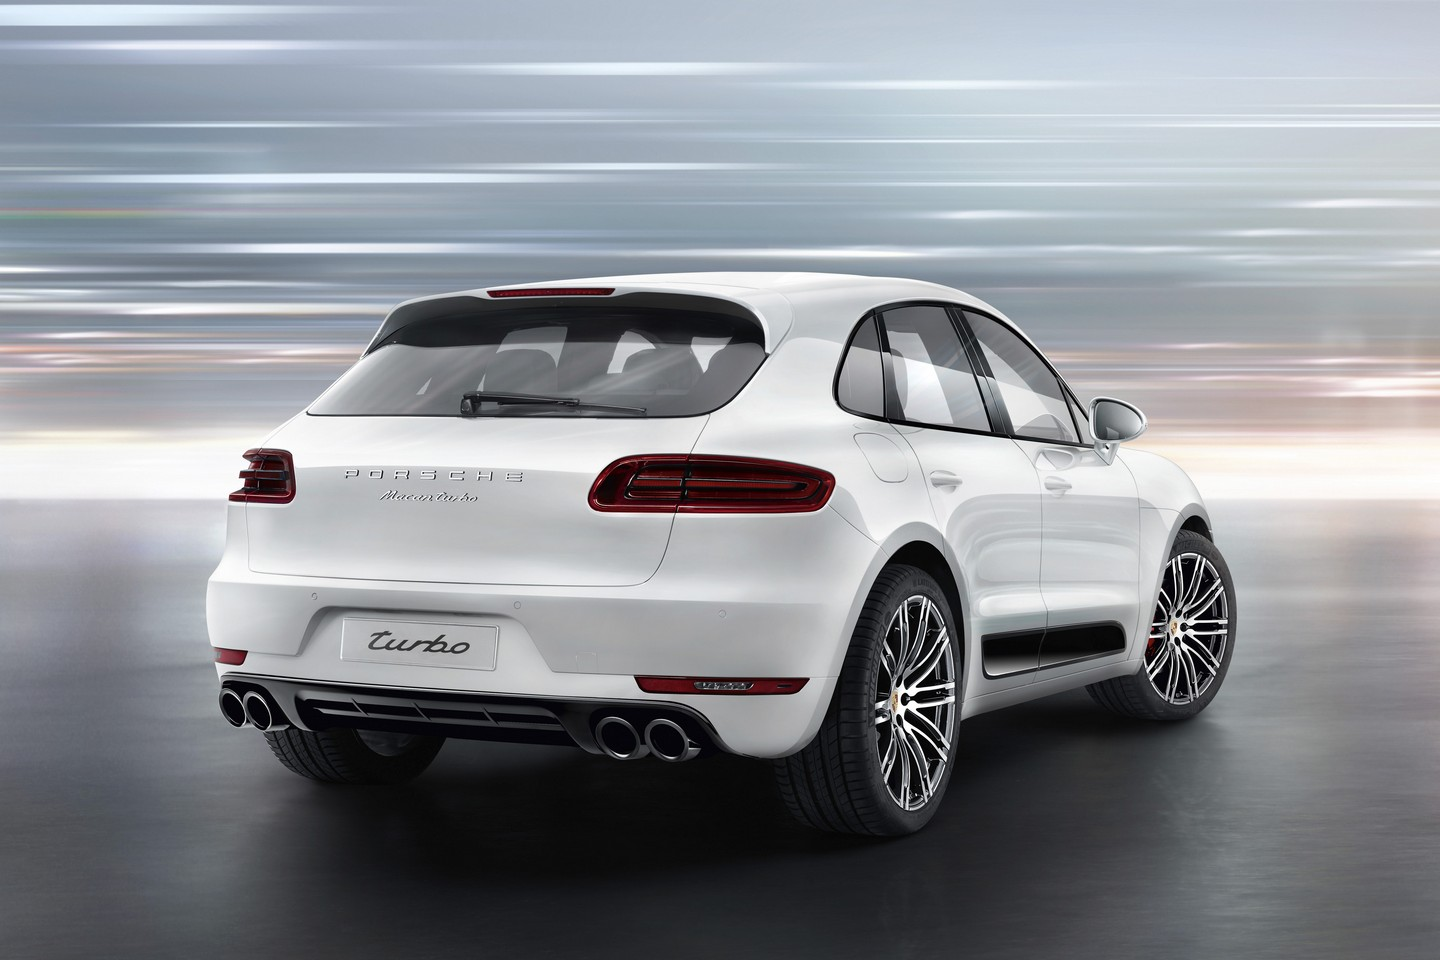 porsche introduces 2016 macan with full led headlights speed carz. Black Bedroom Furniture Sets. Home Design Ideas